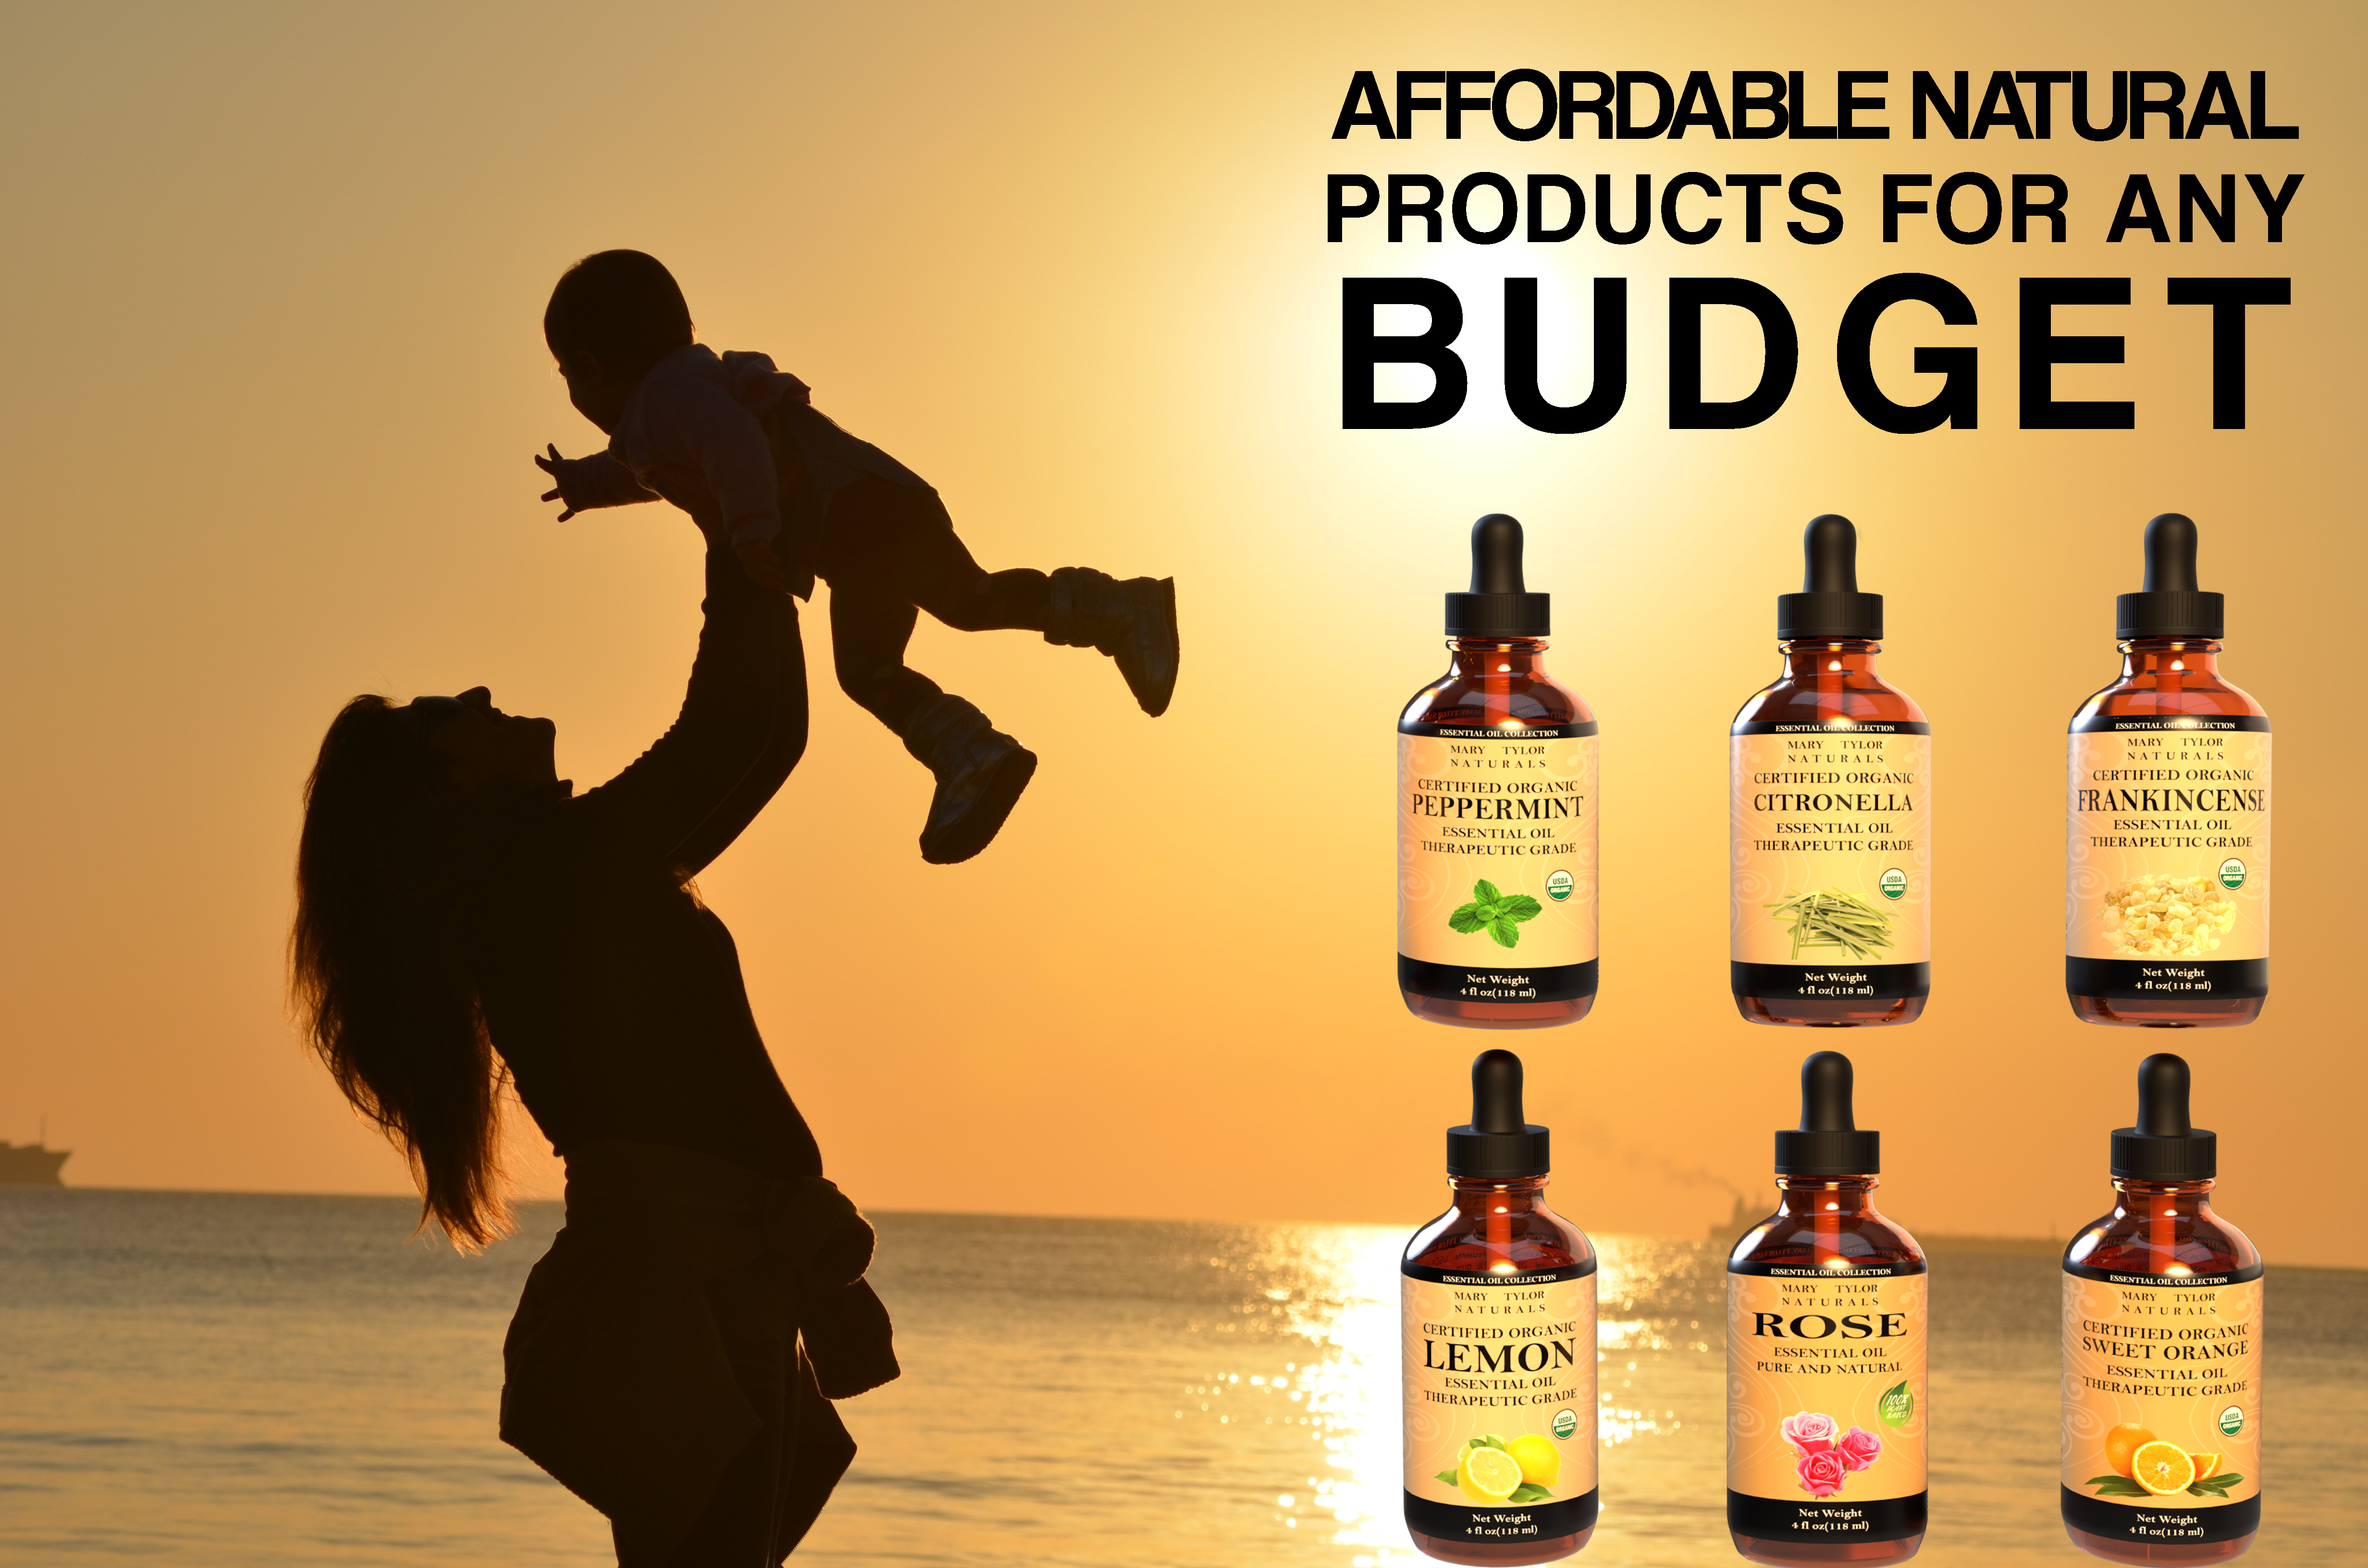 Florida business offers affordable natural products for any budget.